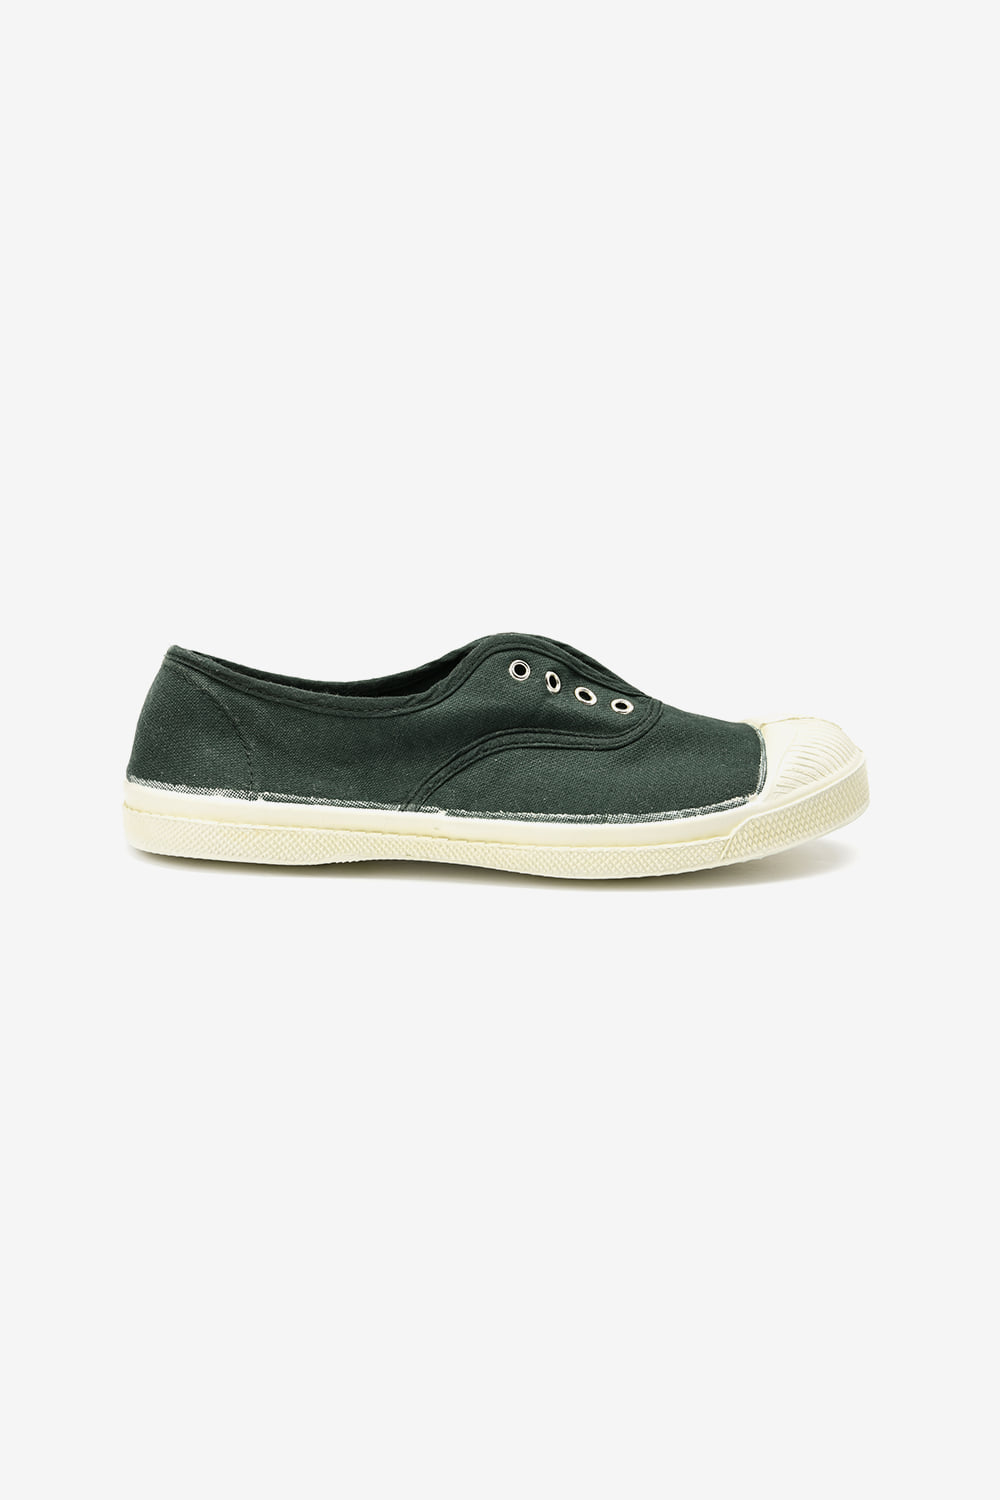 [Woman Elly] Dark green